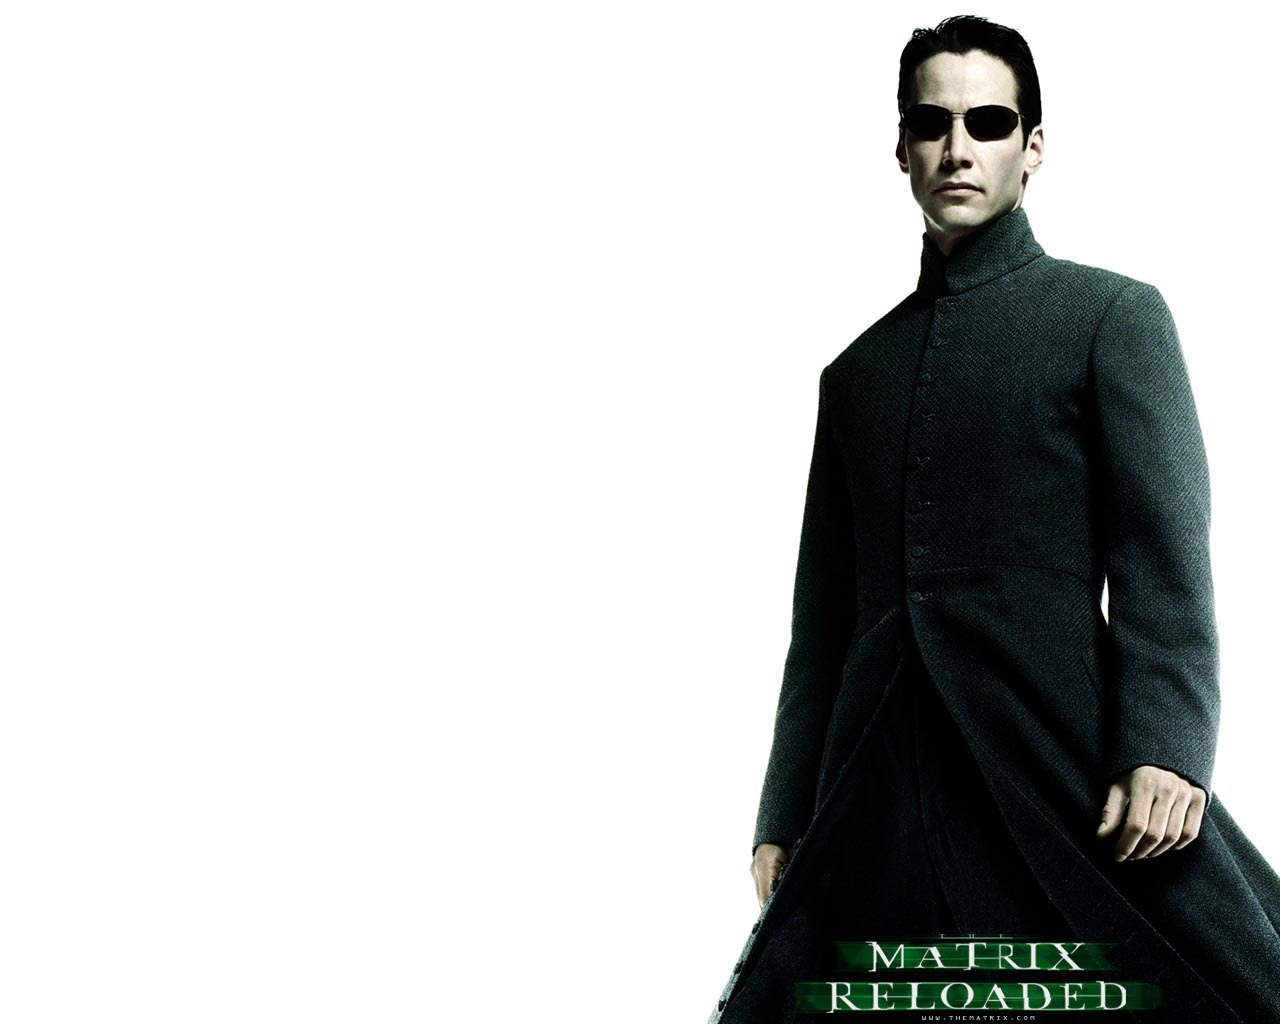 The Matrix The Matrix Neo Wallpaper